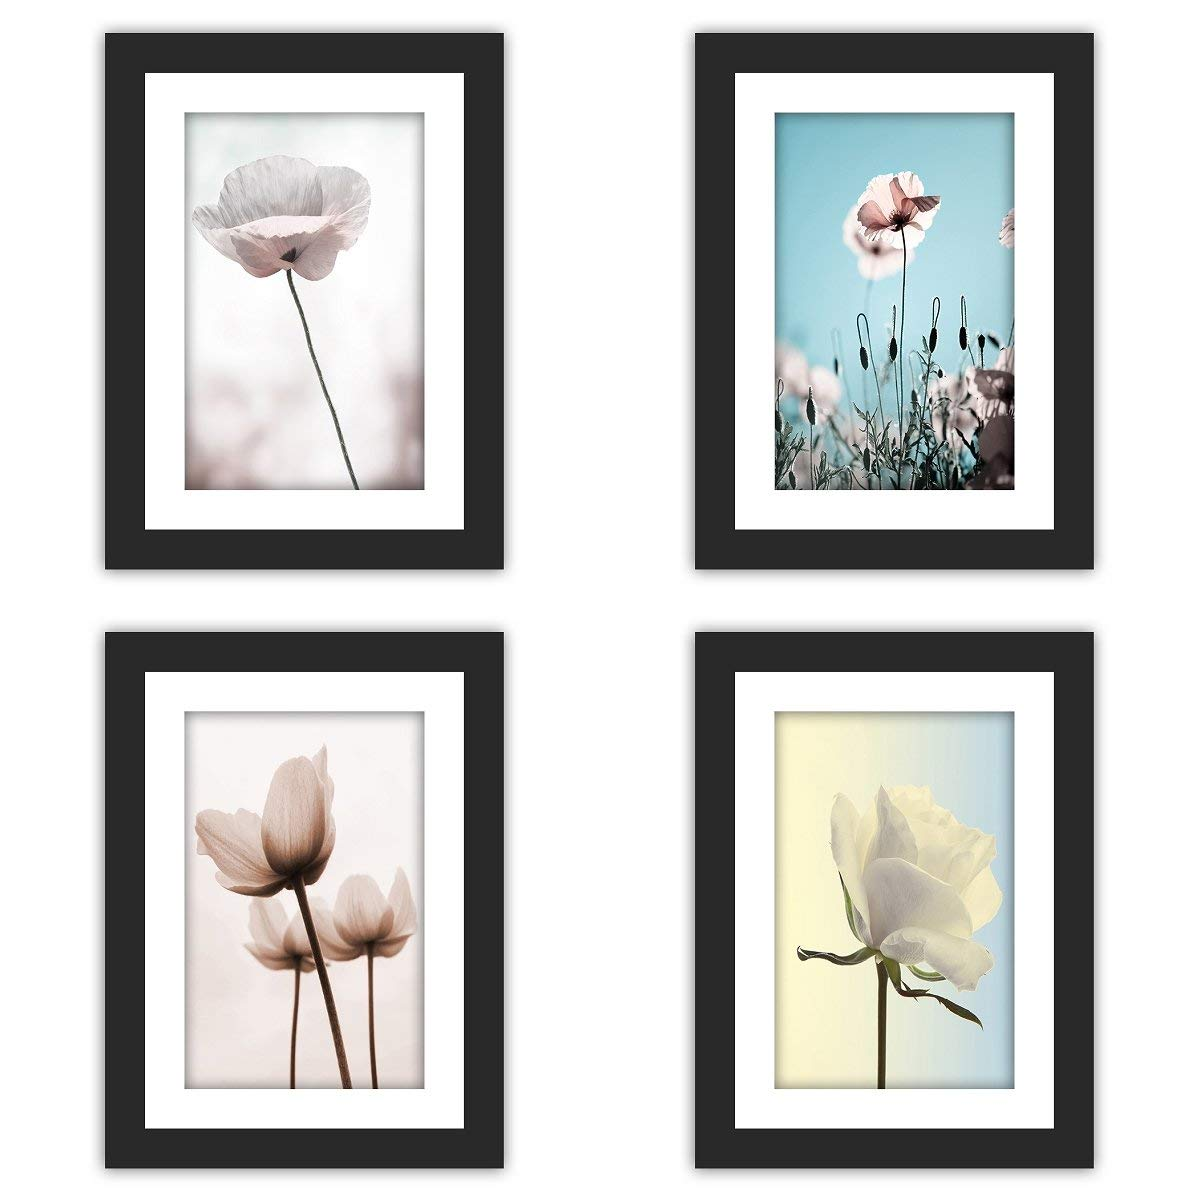 "4x Real Glass Wood Frame Black Fit 5x7"" ,1 Mat Matted Fit Image Pictures Photo 4x6"" Desktop Stand or Wall Hang Vertical Horizontal Family Decoration (29-32)"